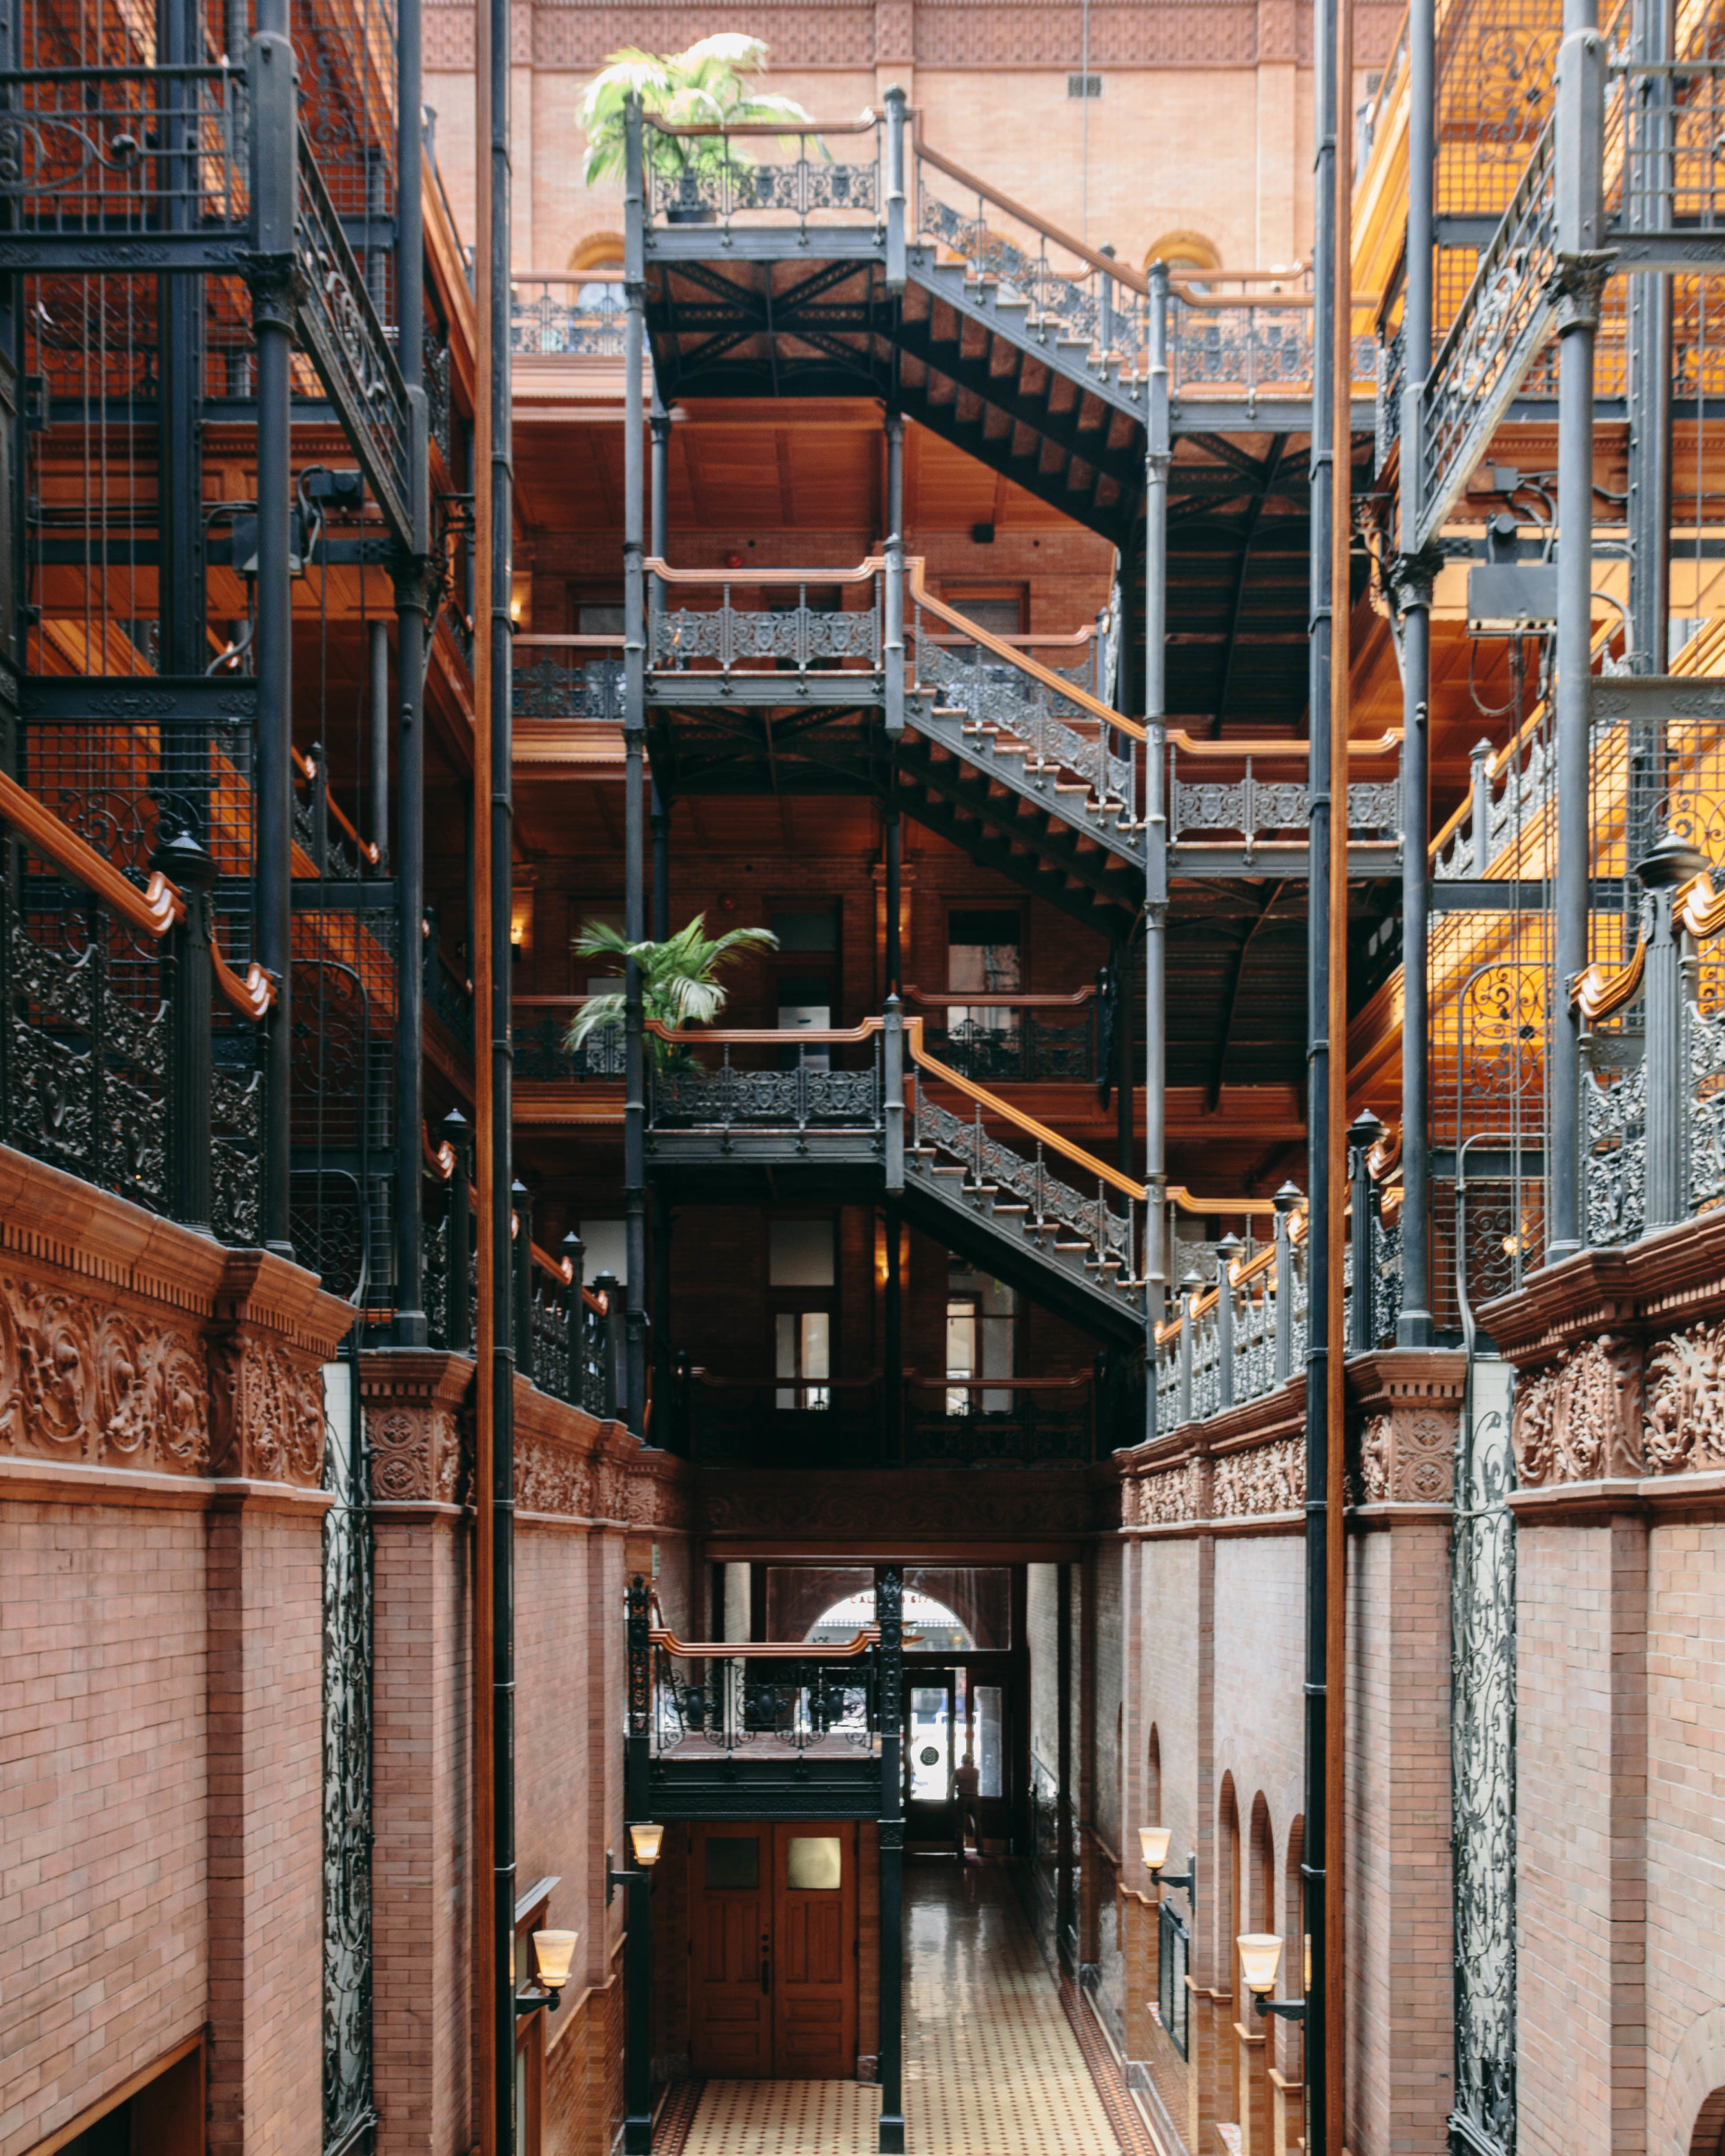 The interior of the Bradbury Building in DTLA.